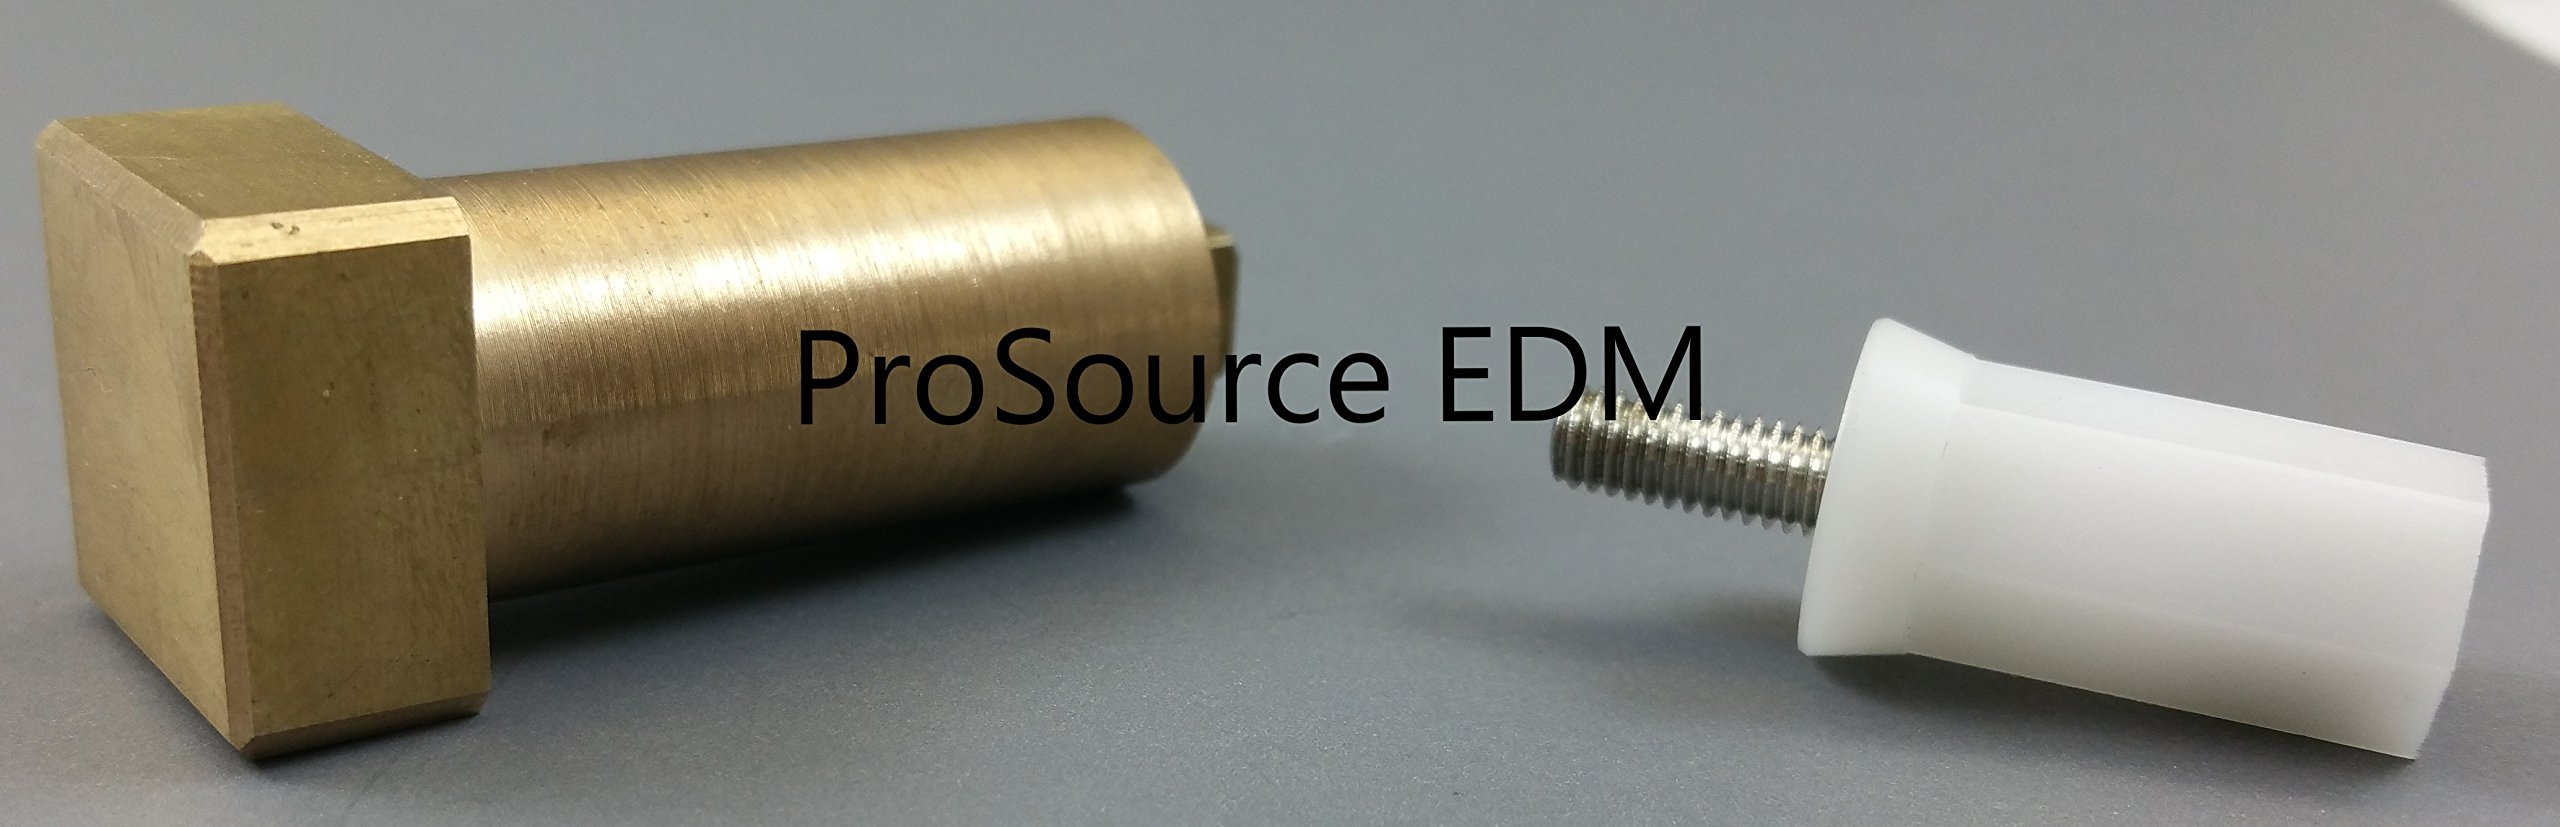 ProSource EDM Consumables Contact Support (Lower)